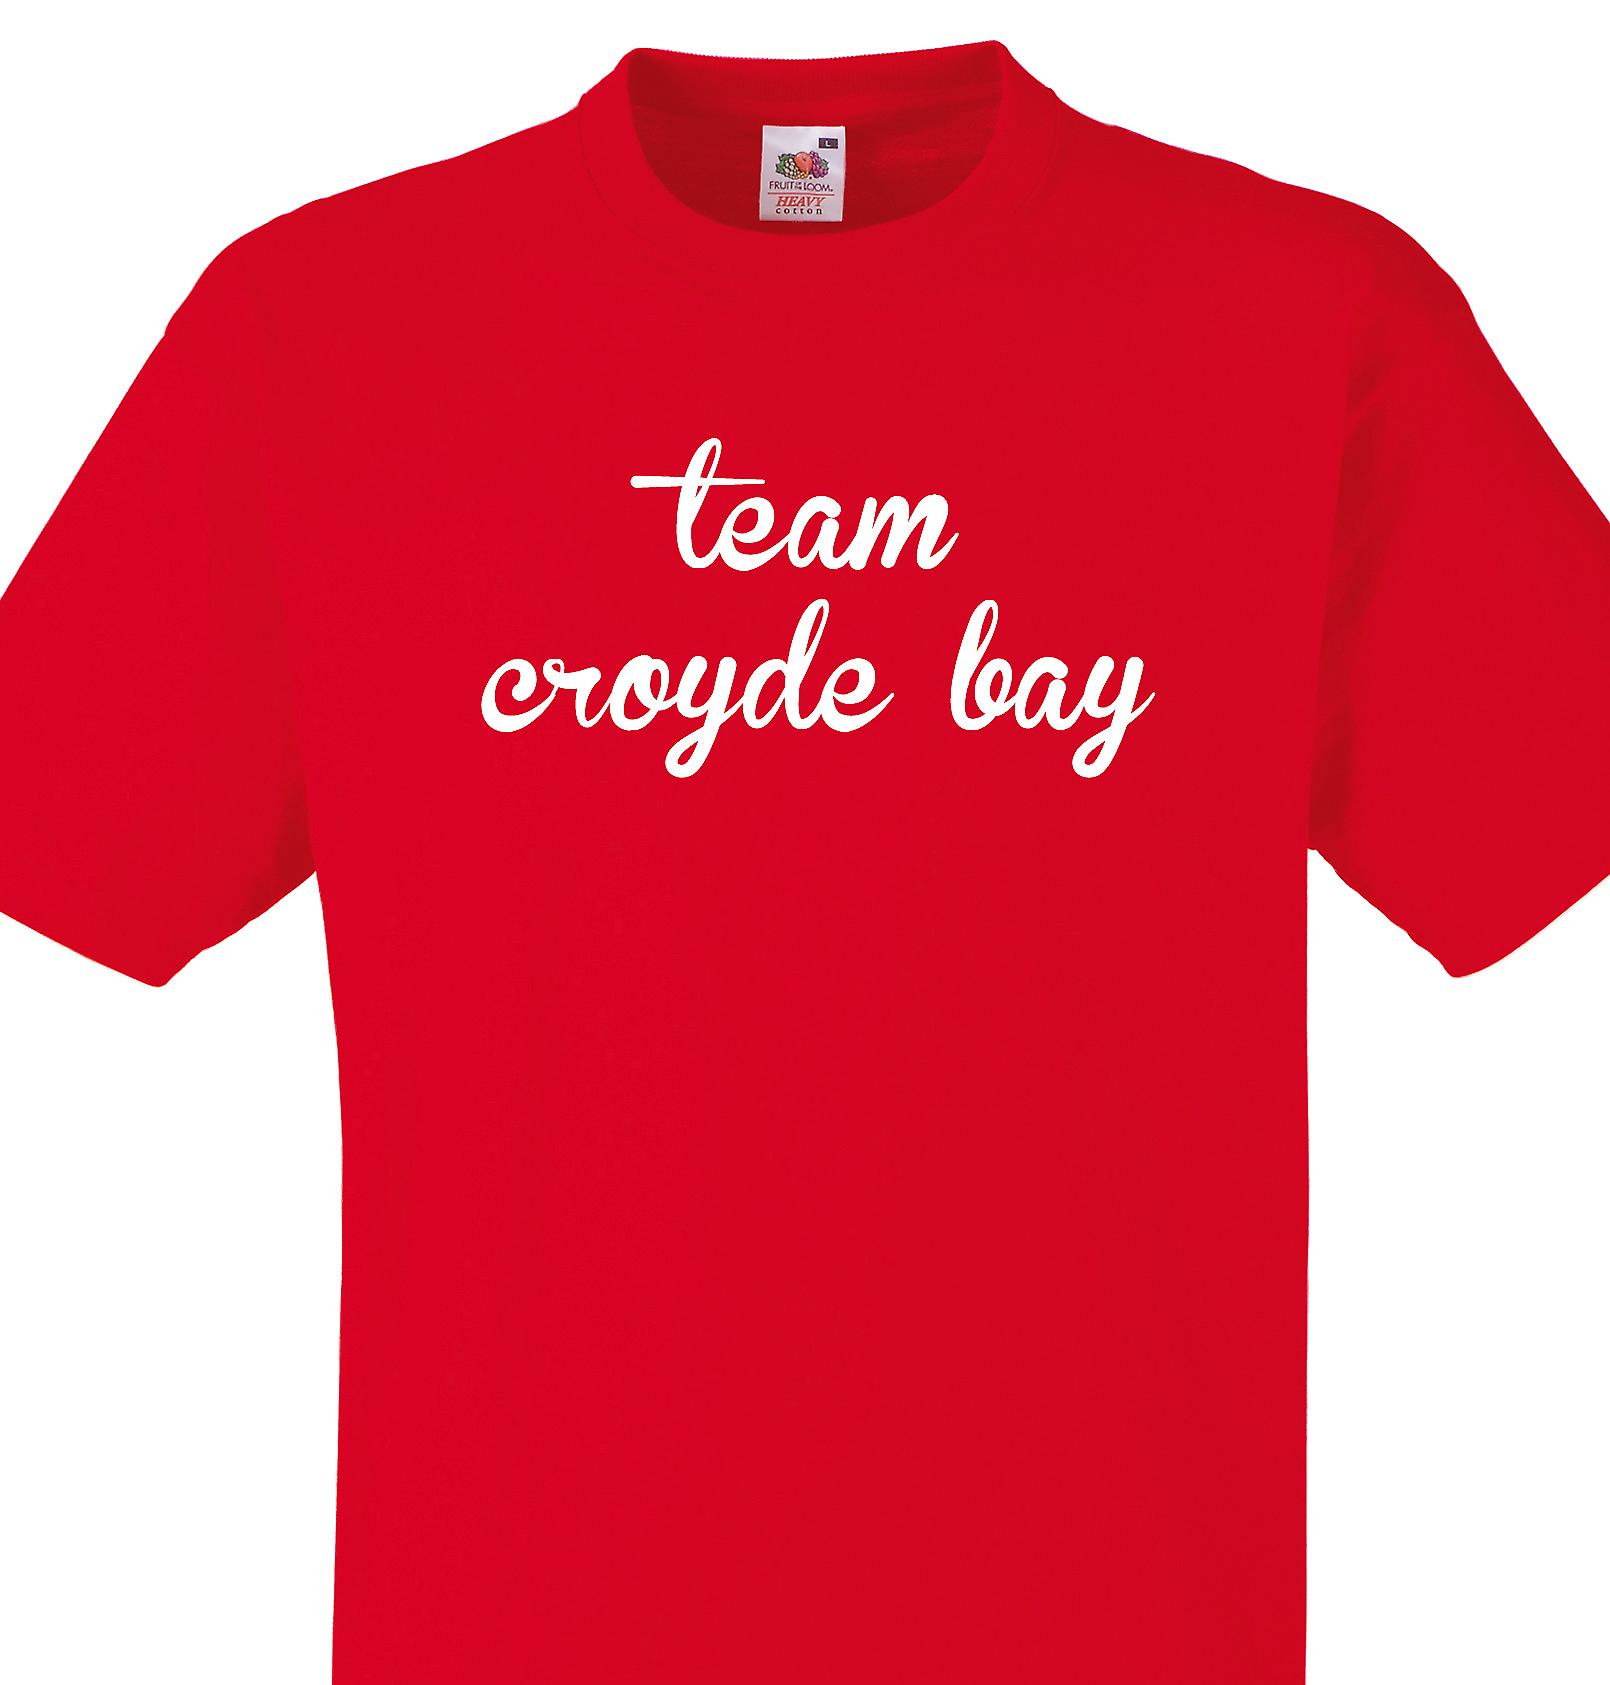 Team Croyde bay Red T shirt